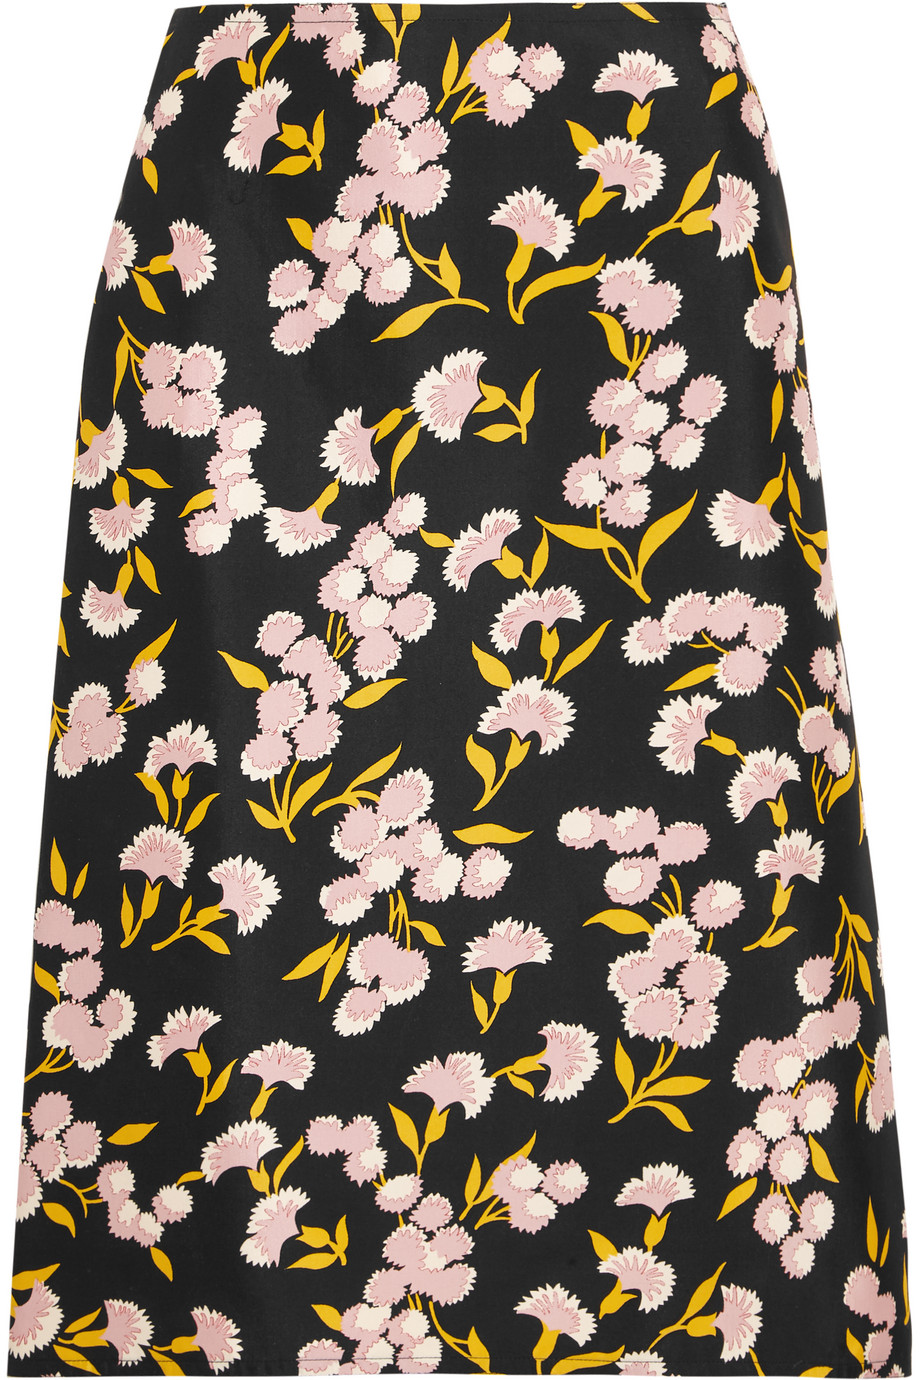 Marni Floral-Print Cotton and Silk-Blend Faille Skirt, Size: 40